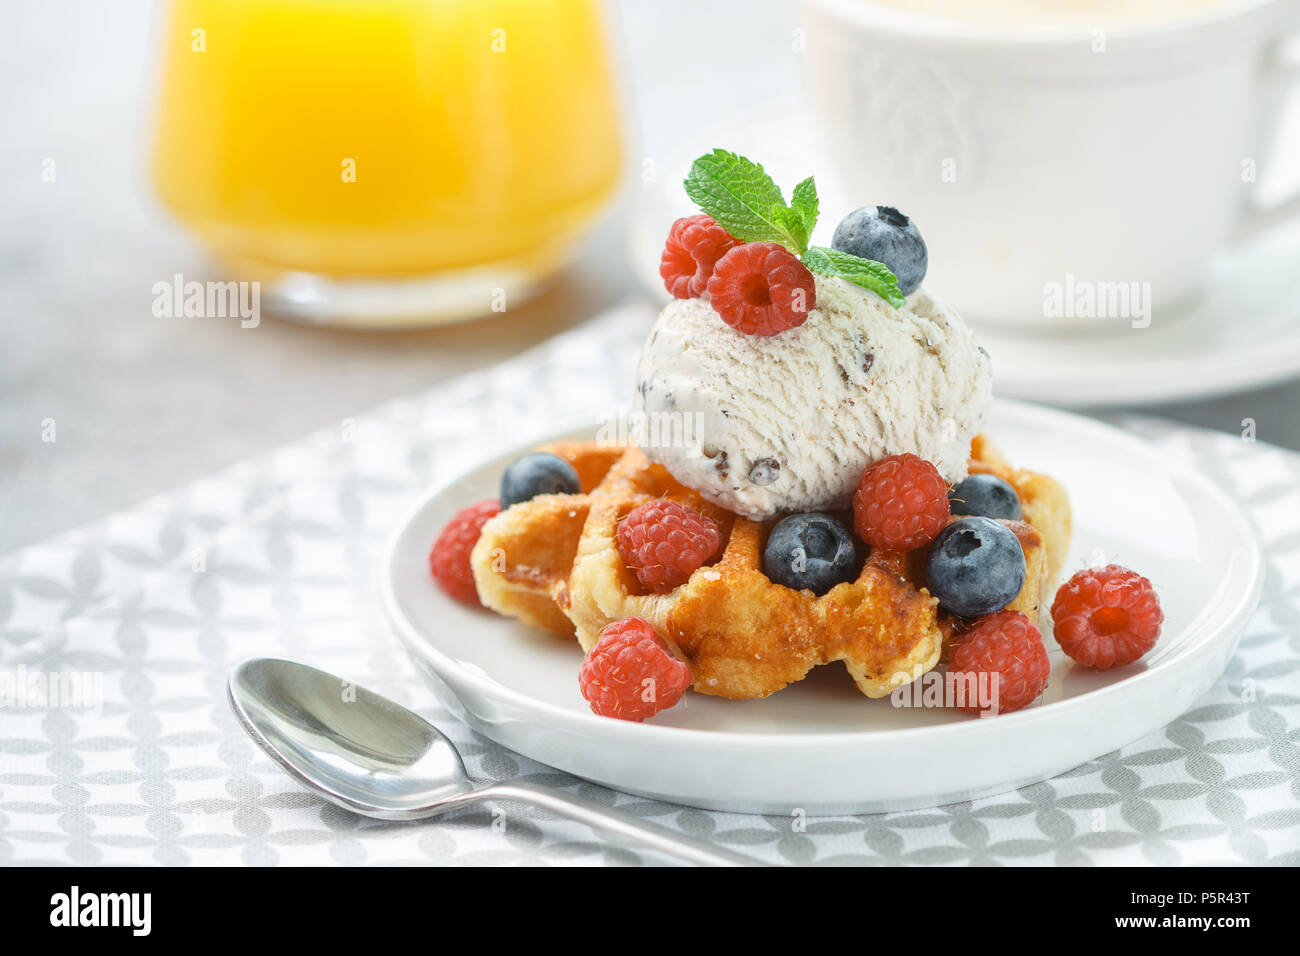 Homemade waffles with ice cream and fresh berries-raspberries, blueberries. Delicious dessert, cappuccino and orange juice on the table. Selective foc - Stock Image